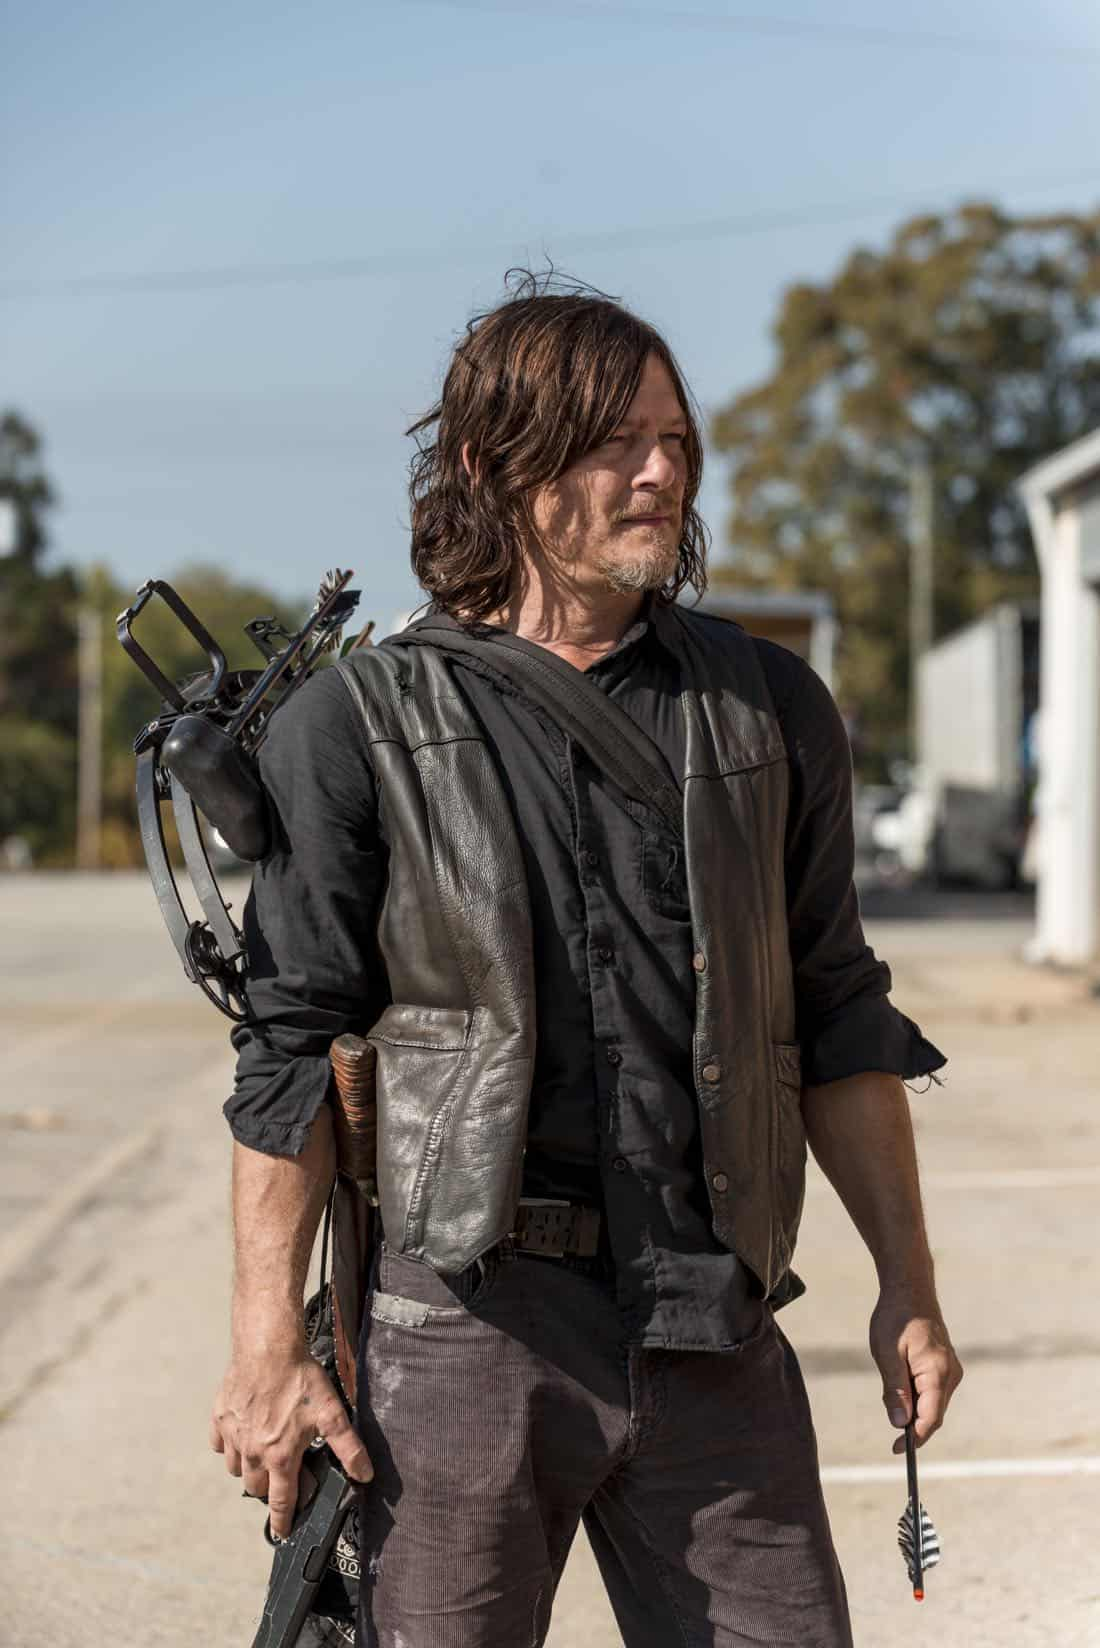 Norman Reedus as Daryl Dixon - The Walking Dead _ Season 8, Episode 15 - Photo Credit: Gene Page/AMC